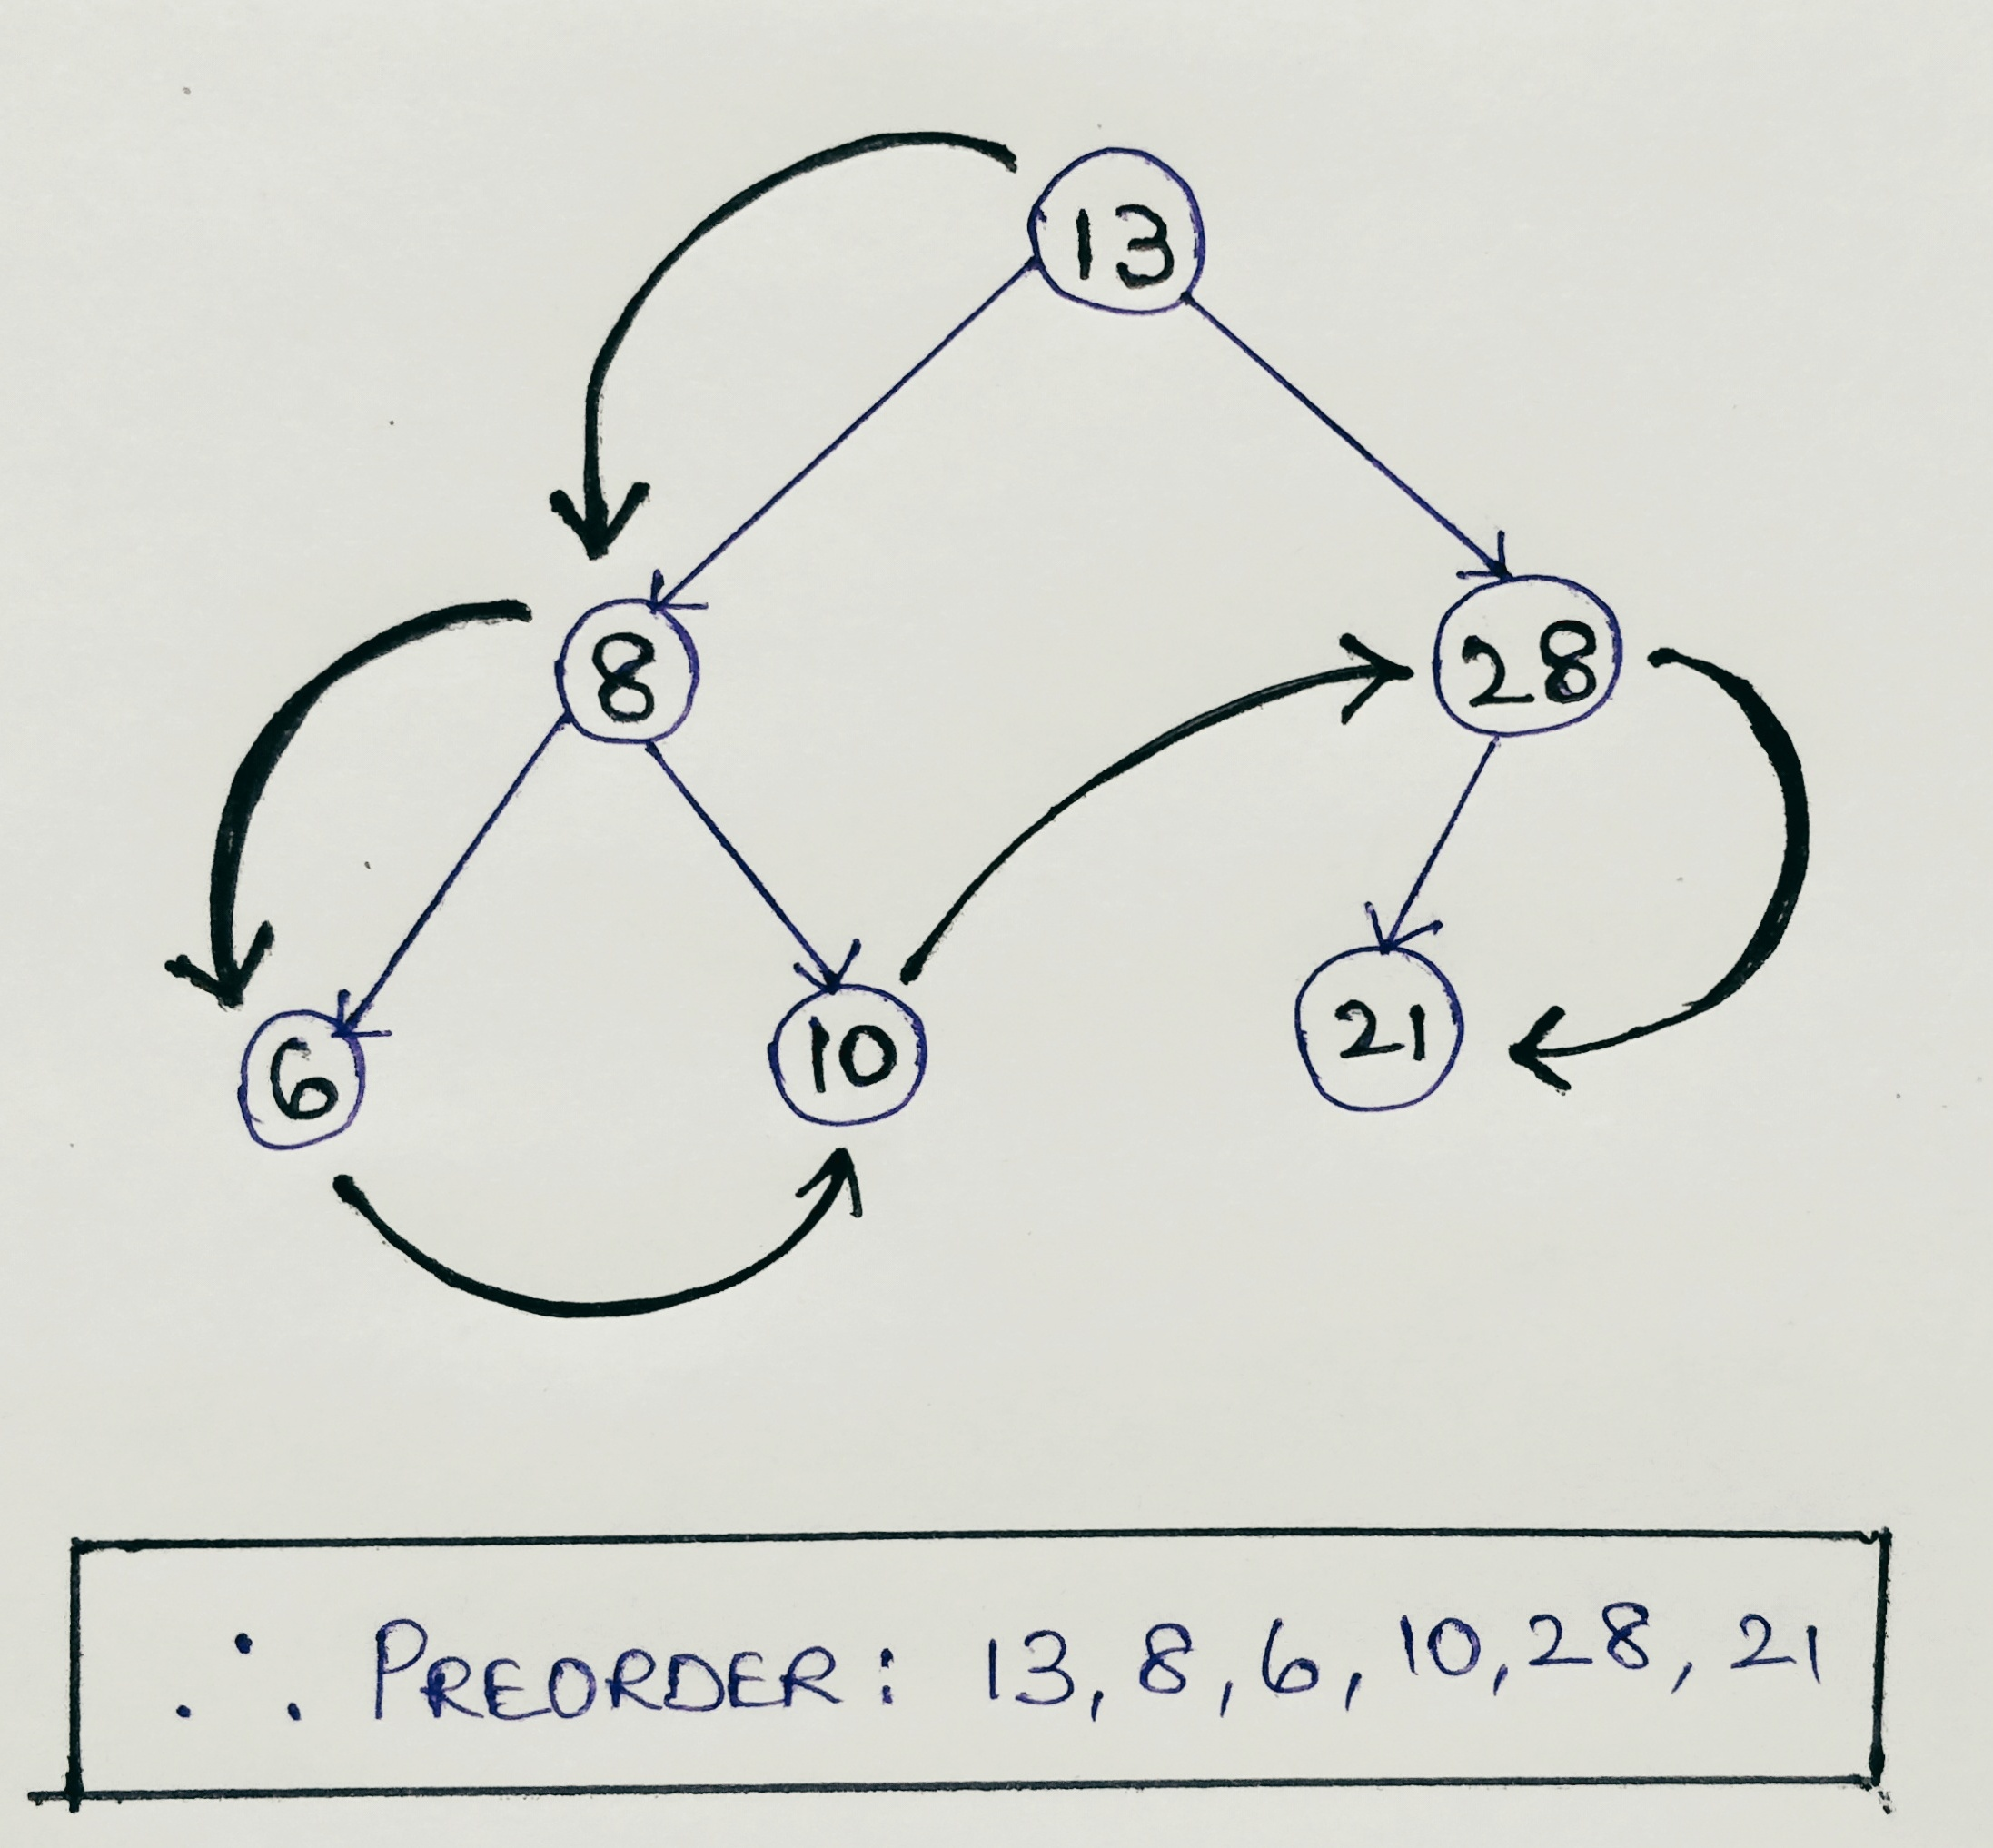 Preorder tree Traversal using Recursion in Java